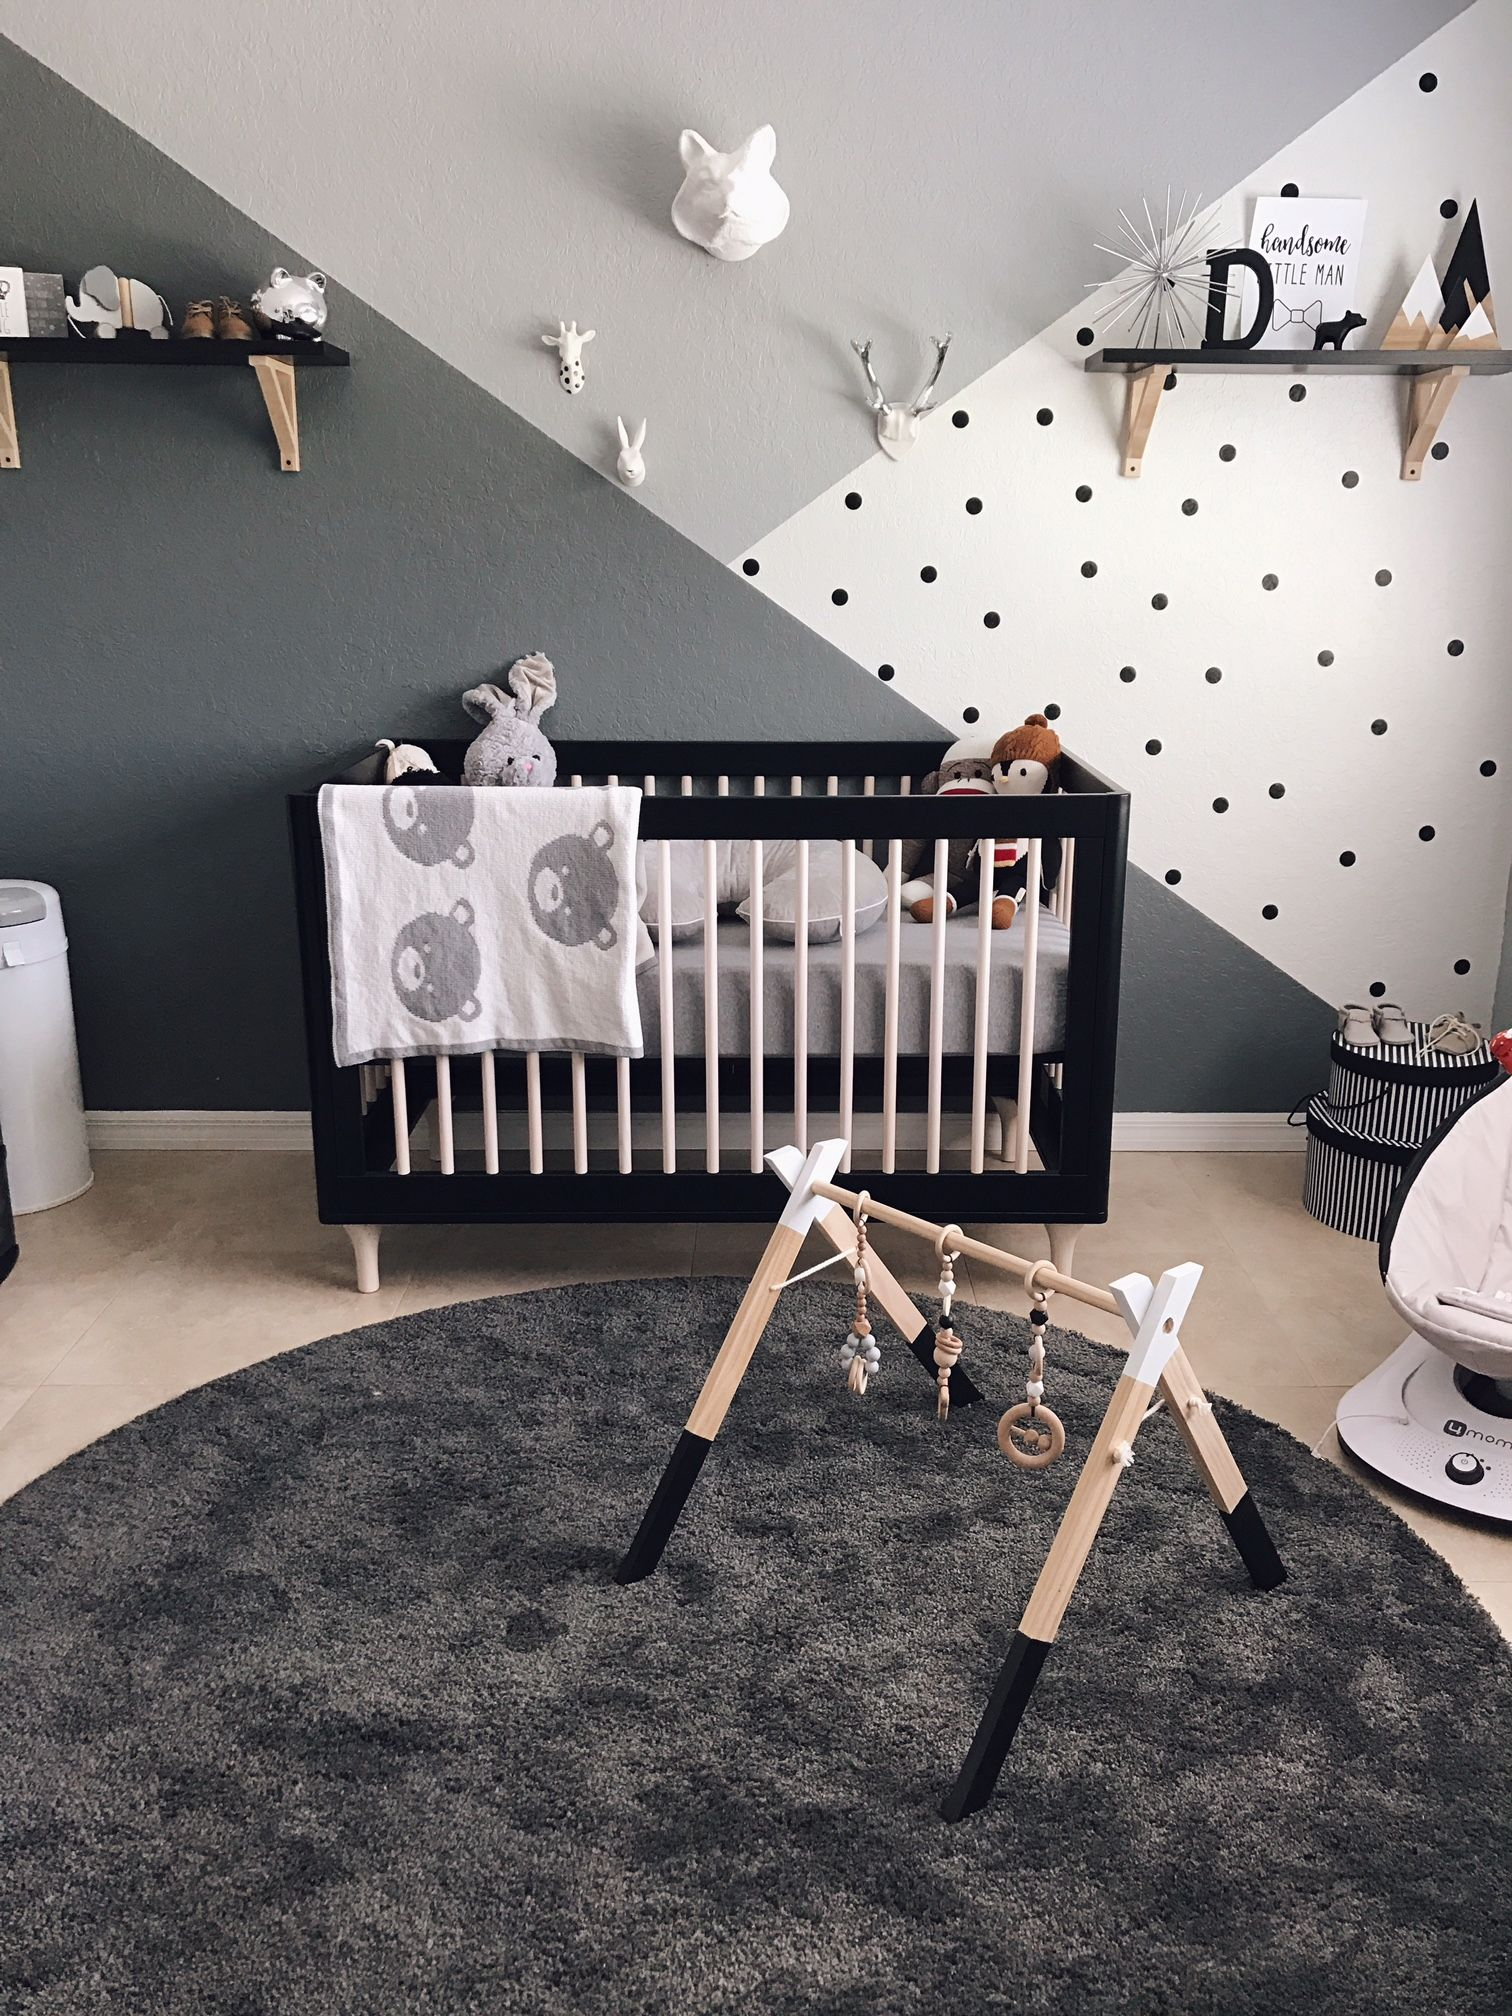 Monochrome Zoo Nursery | Nursery, Zoo nursery and Monochrome